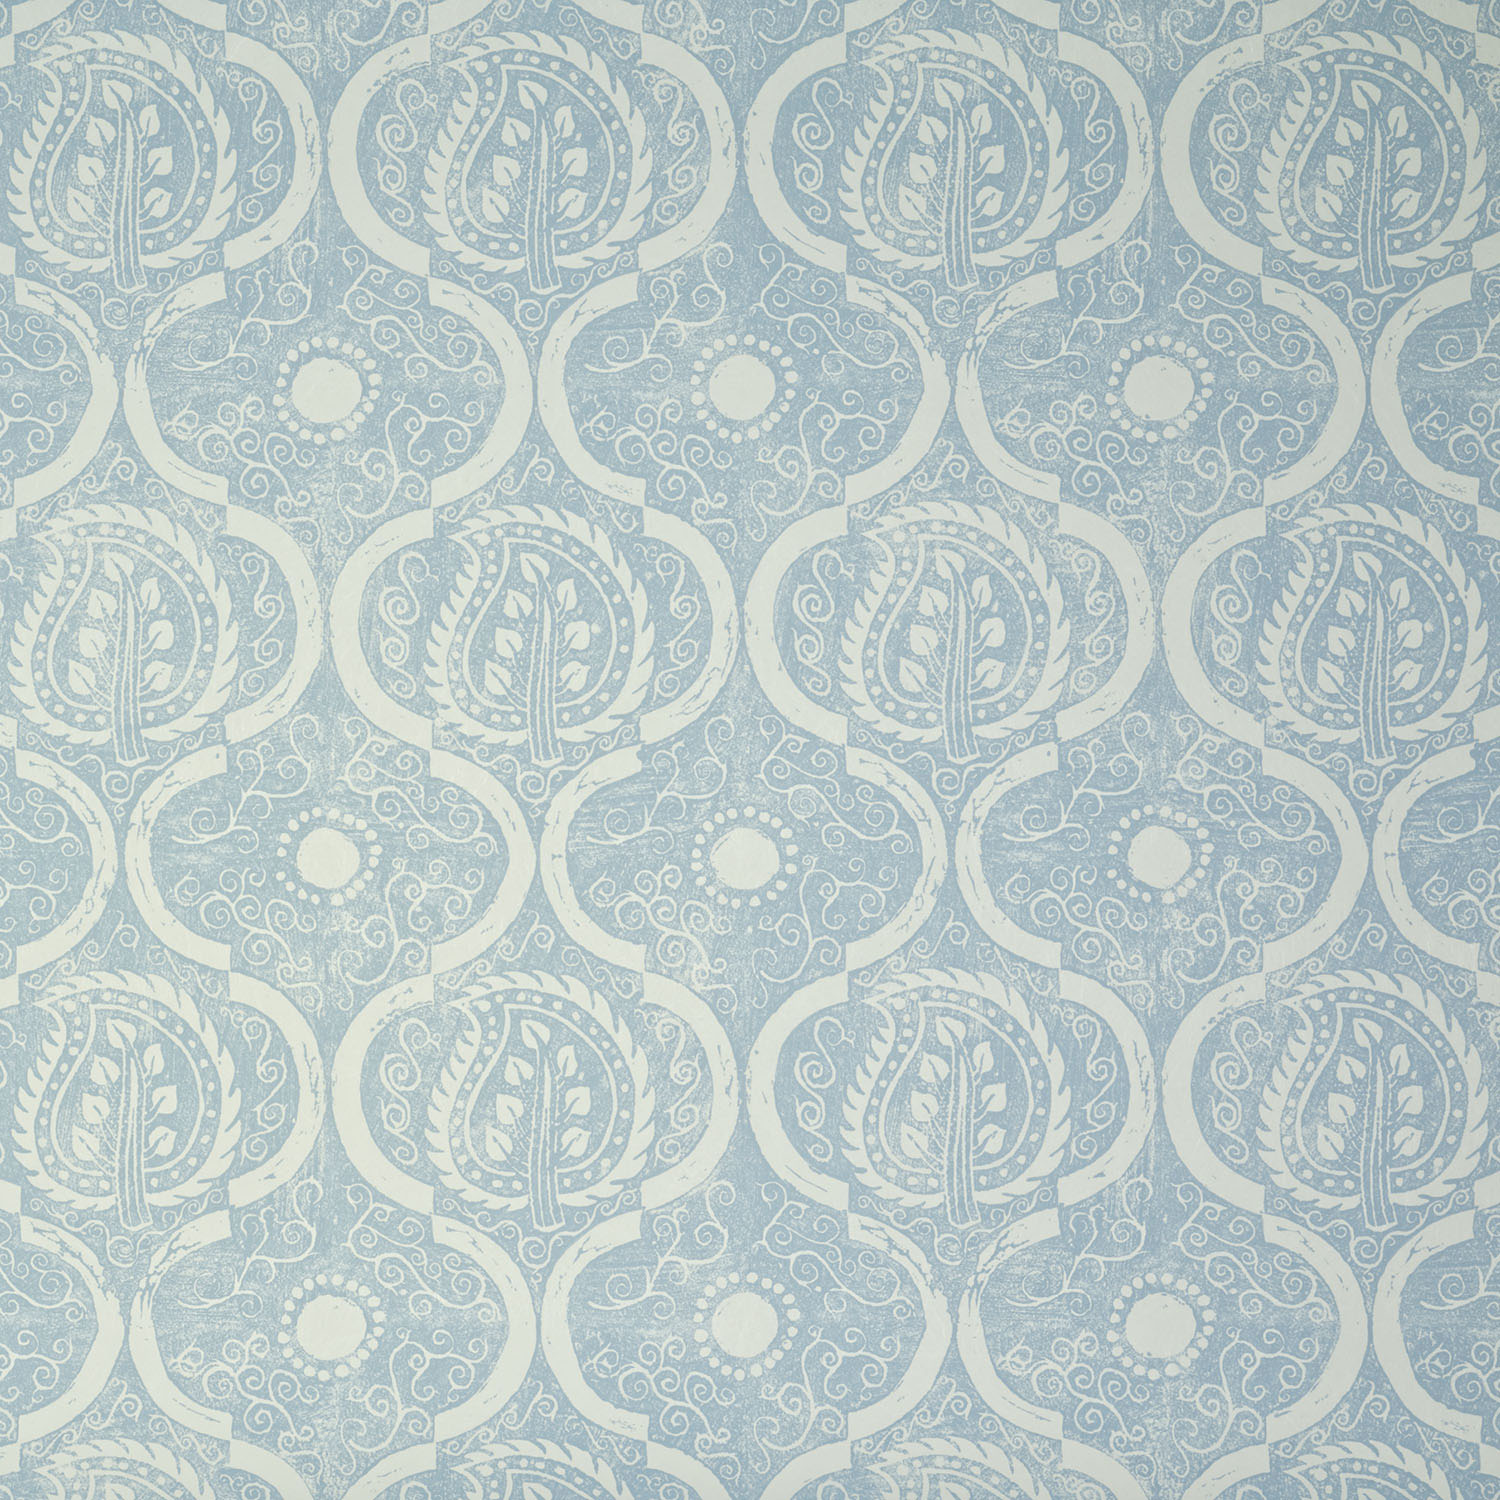 <p><strong>PERSIAN LEAF</strong>blue 840-02<a href=/the-peggy-angus-collection/persian-leaf-blue-840-02>More →</a></p>